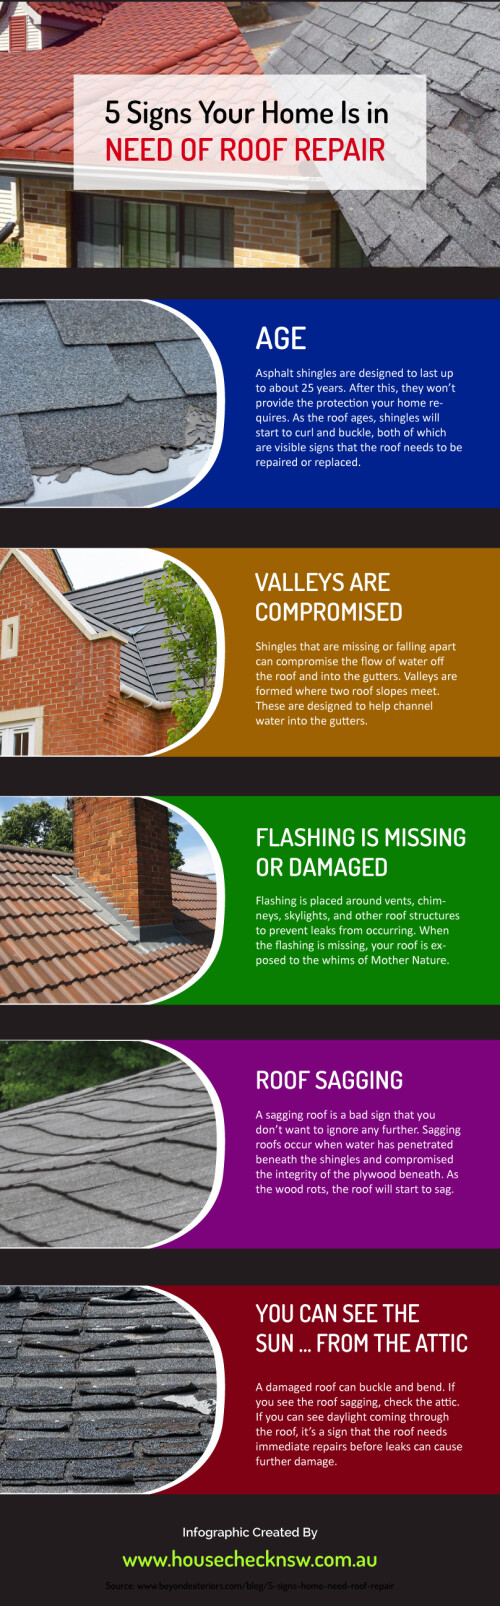 5-Signs-Your-Home-Is-in-Need-of-Roof-Repairb88be2f5c7464307.jpg